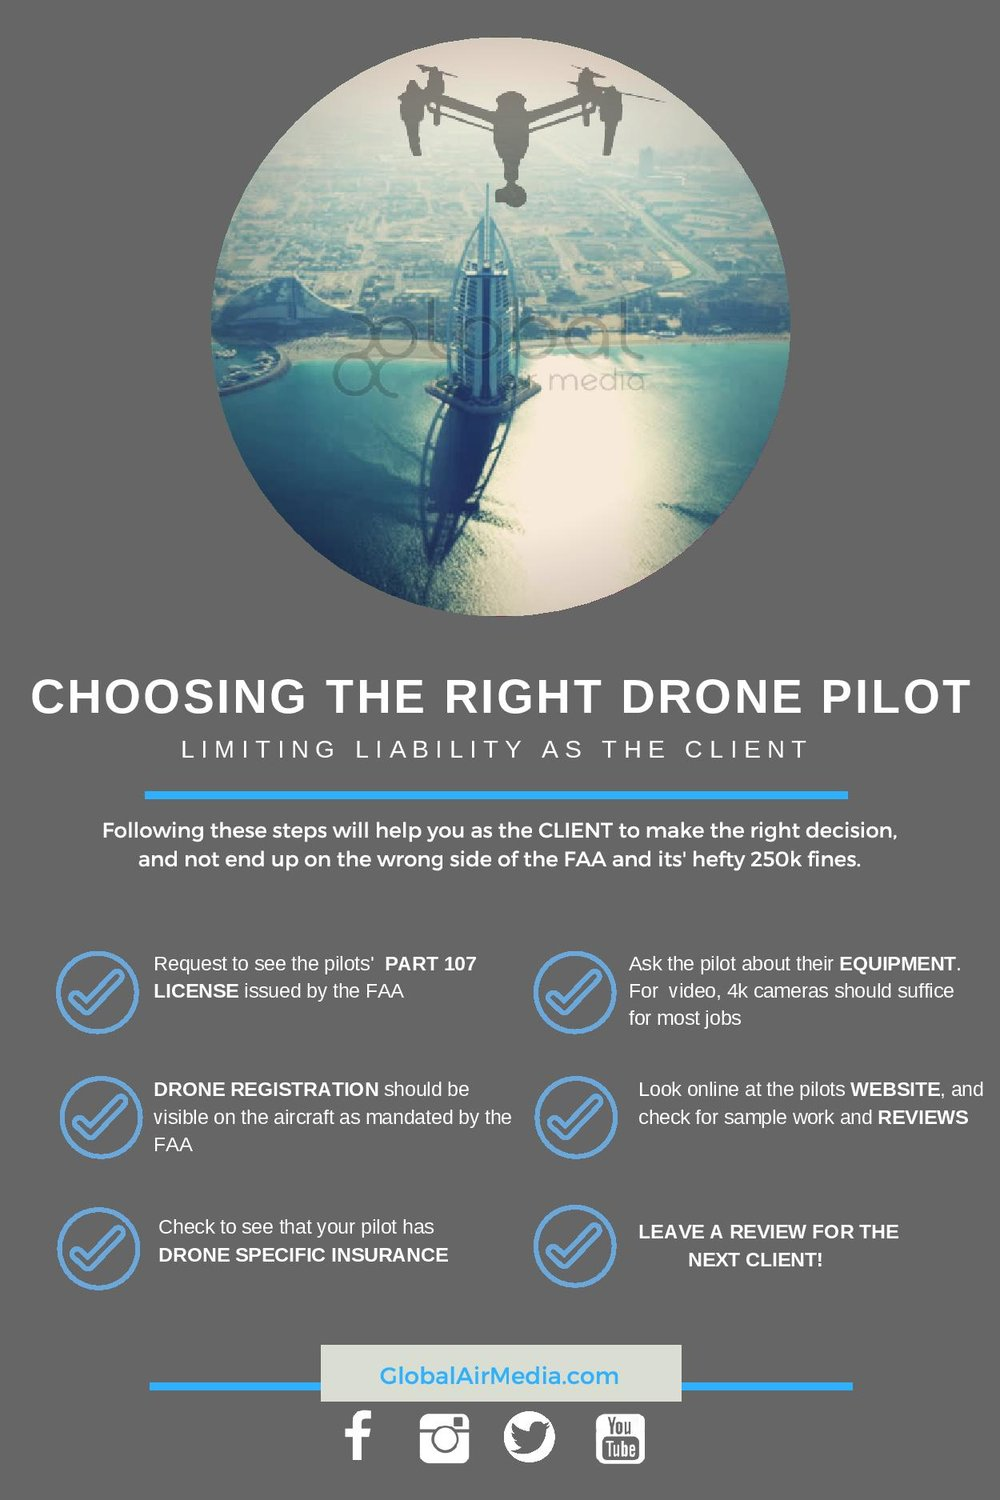 Here are some handy tips for when hiring a drone pilot